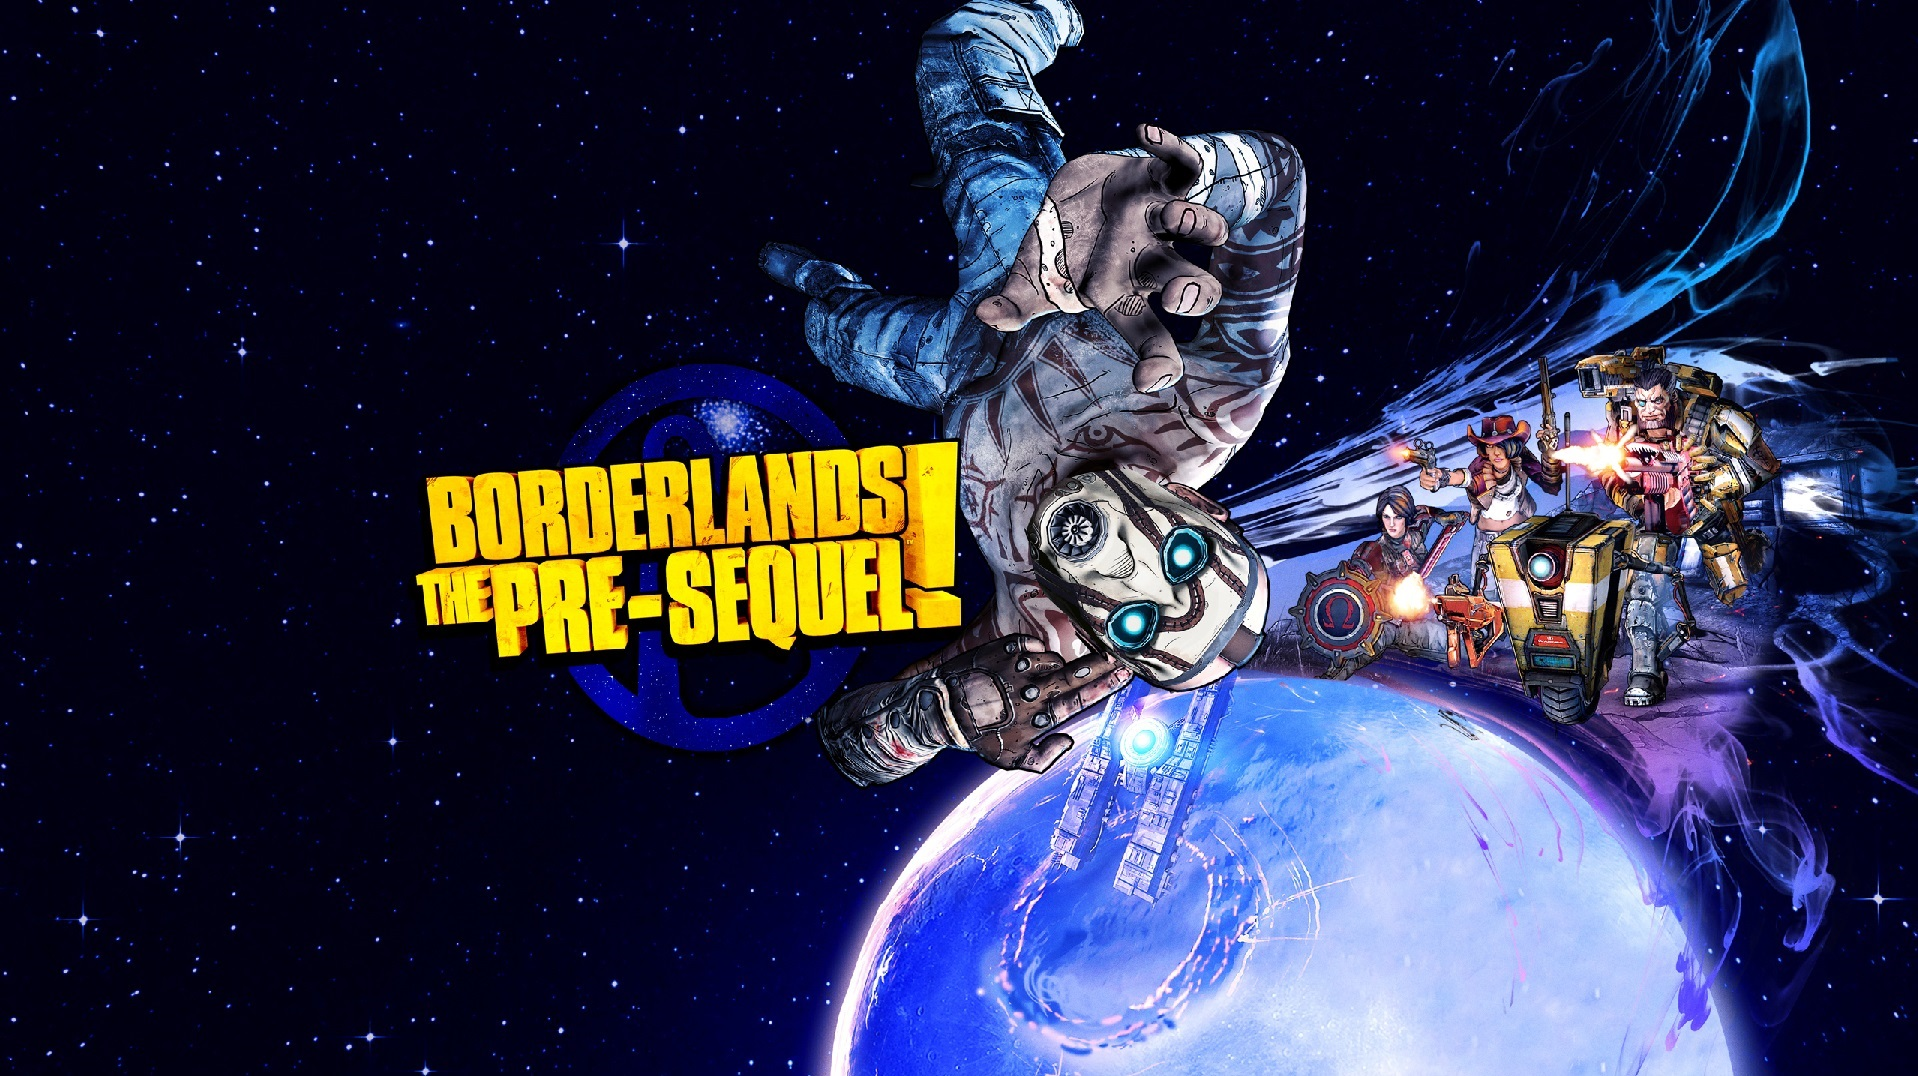 REVIEWED] Borderlands: The Pre-Sequel - Better in space - htxt africa